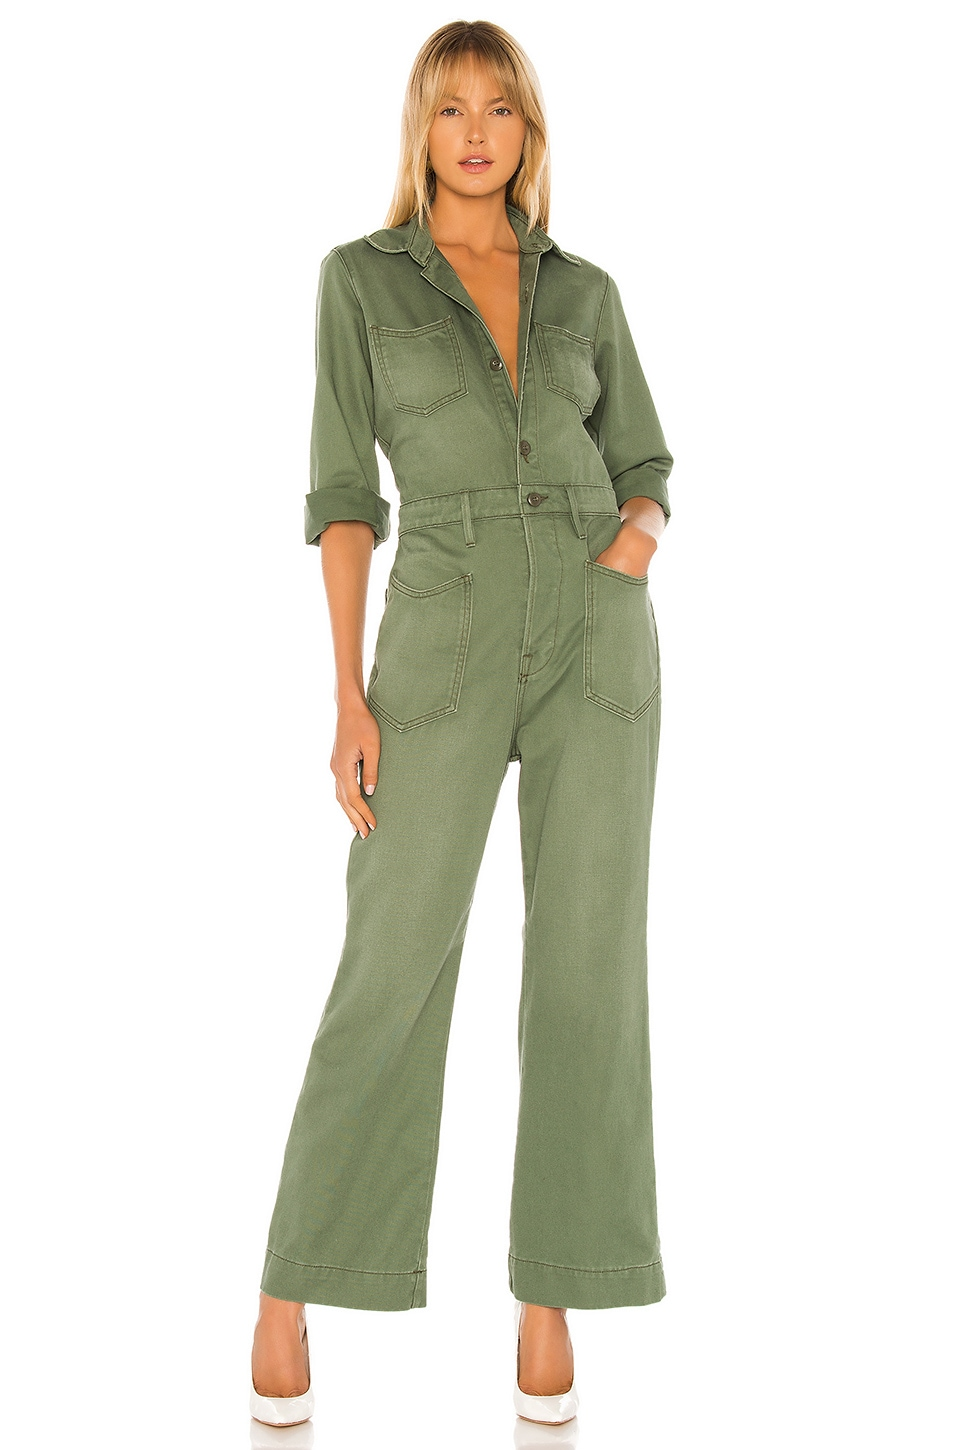 NSF Charley Arrow West Jumpsuit in Military Green